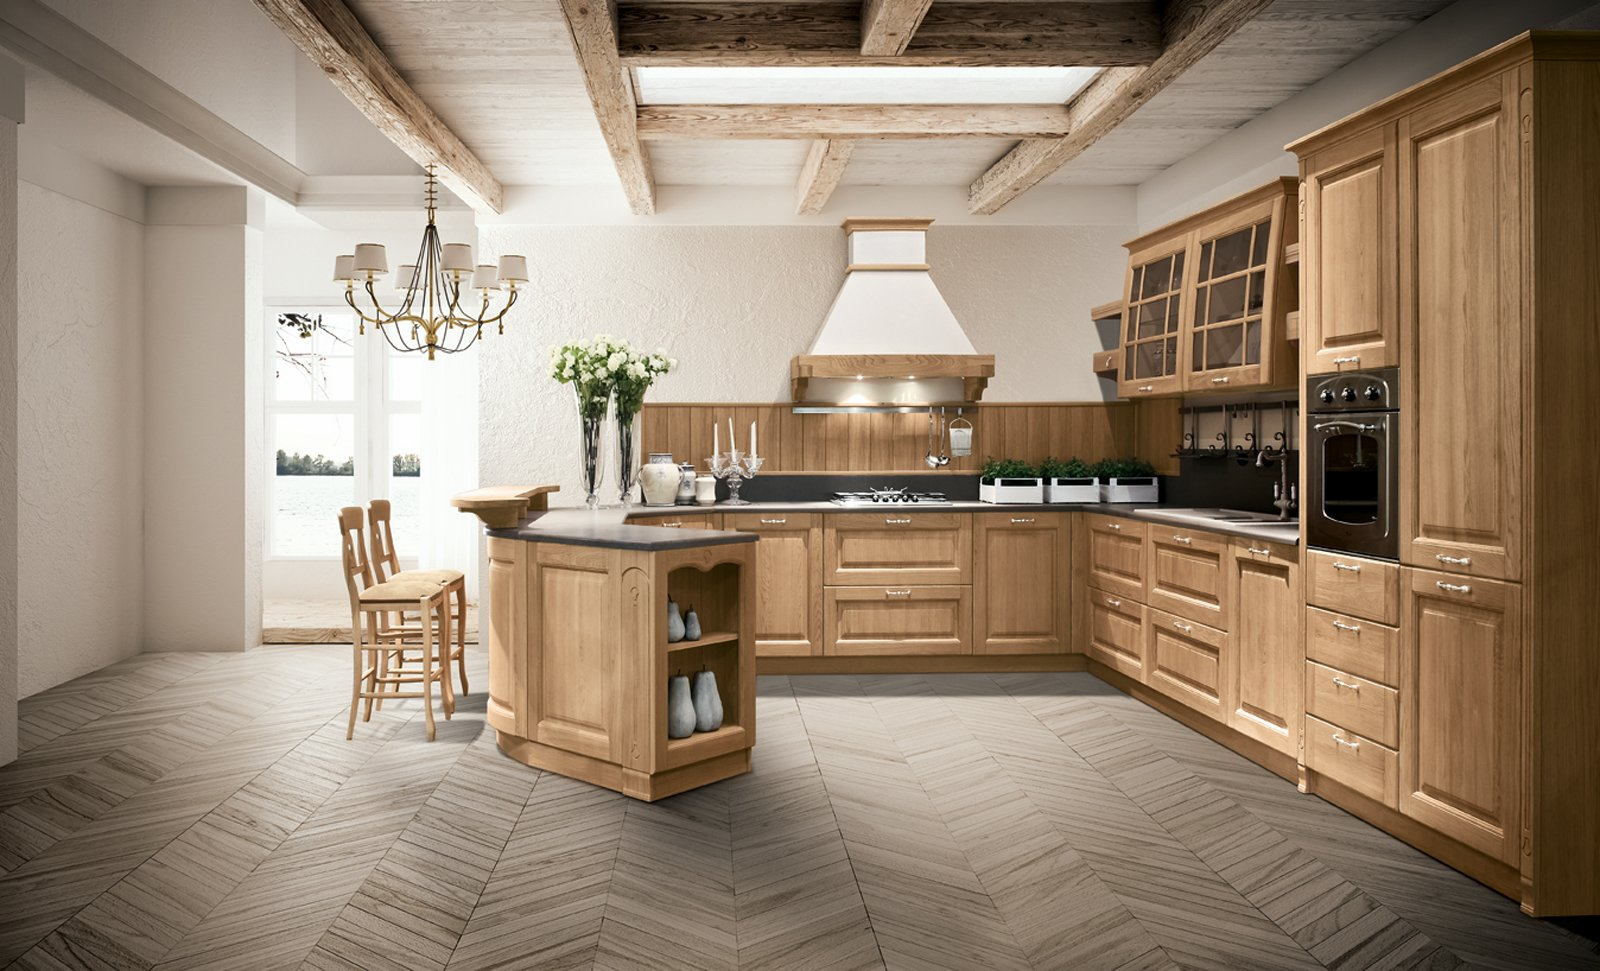 Awesome Cucine Stile Inglese Gallery - Design & Ideas 2017 - candp.us